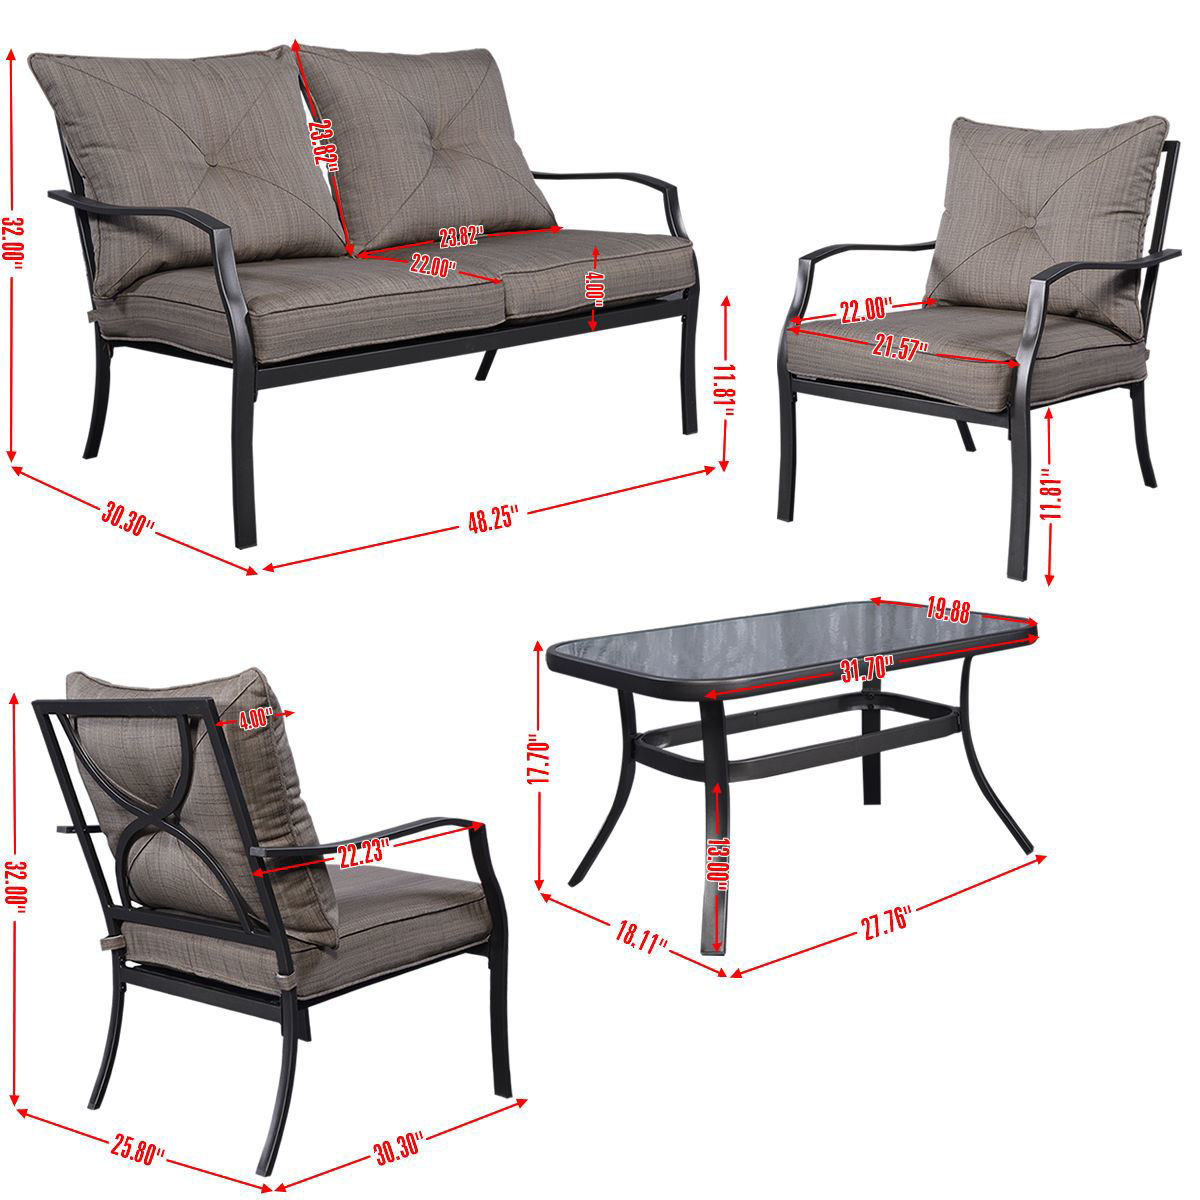 Picture of Outdoor Patio Furniture Set Tea Table & Chairs 4 Piece